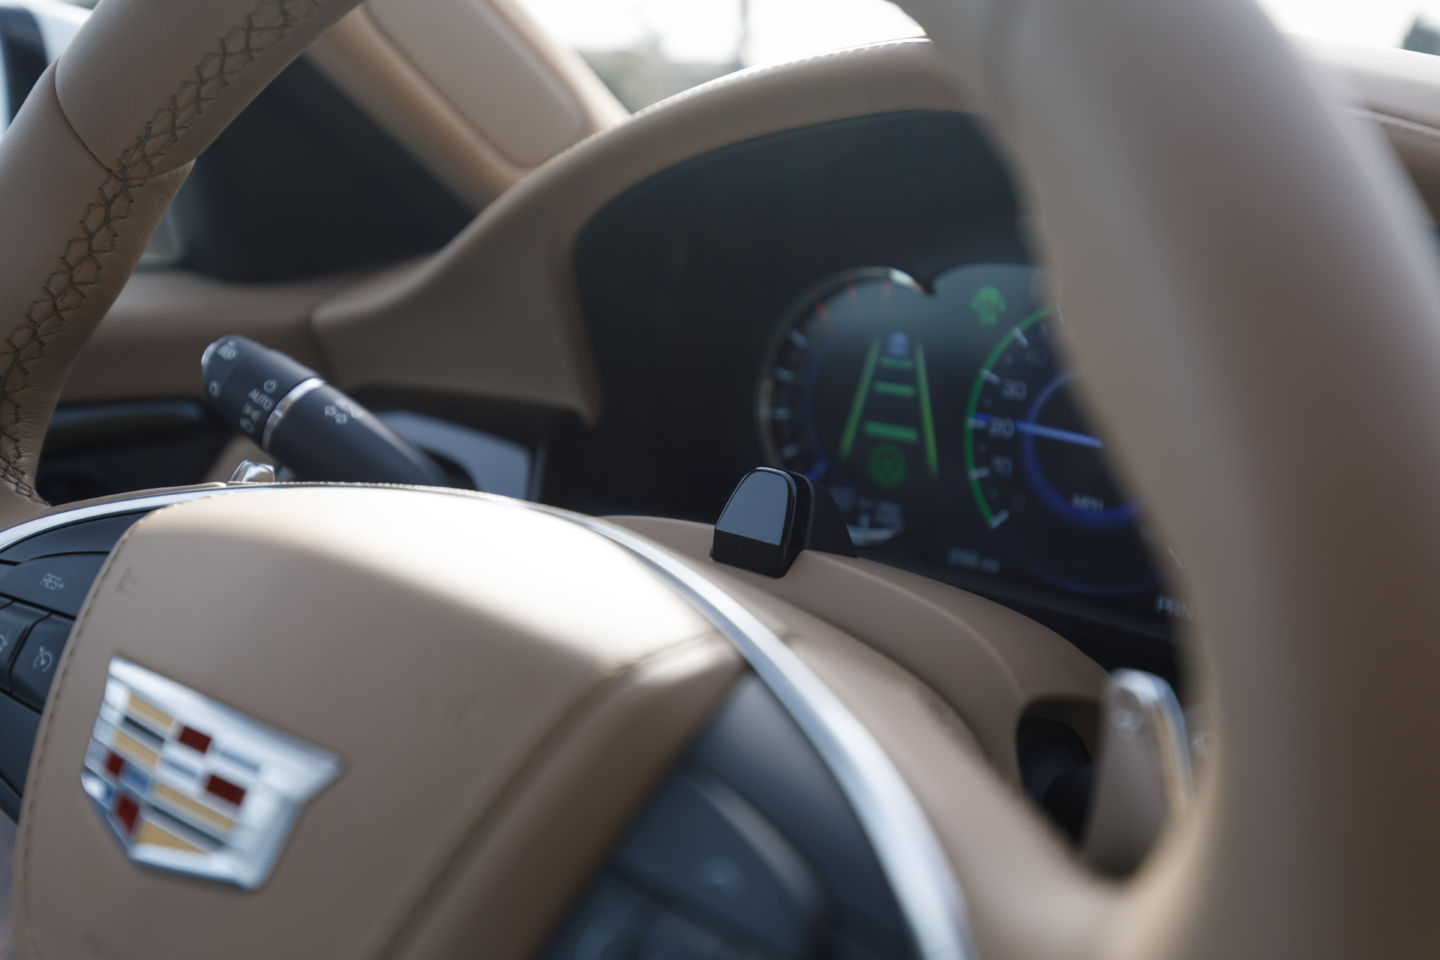 The driver attention system uses a small camera located on the top of the steering column and works with infrared lights to determine where the driver is looking whenever Super Cruise™ is in operation.